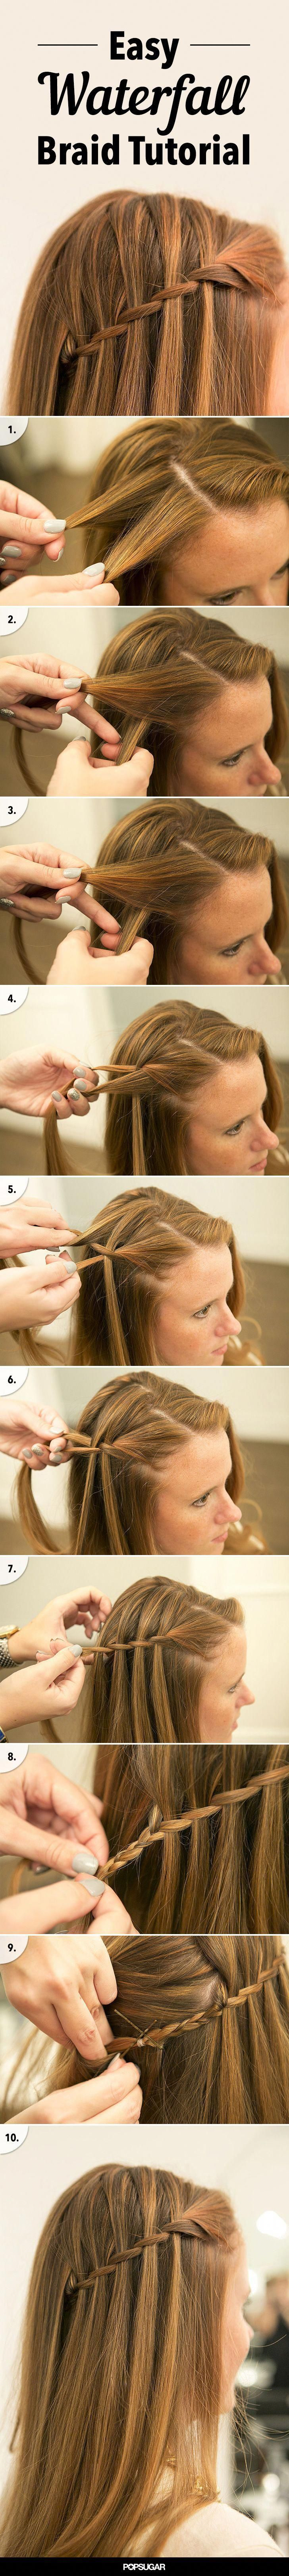 diy hairstyles step by step #Diyhairstyles